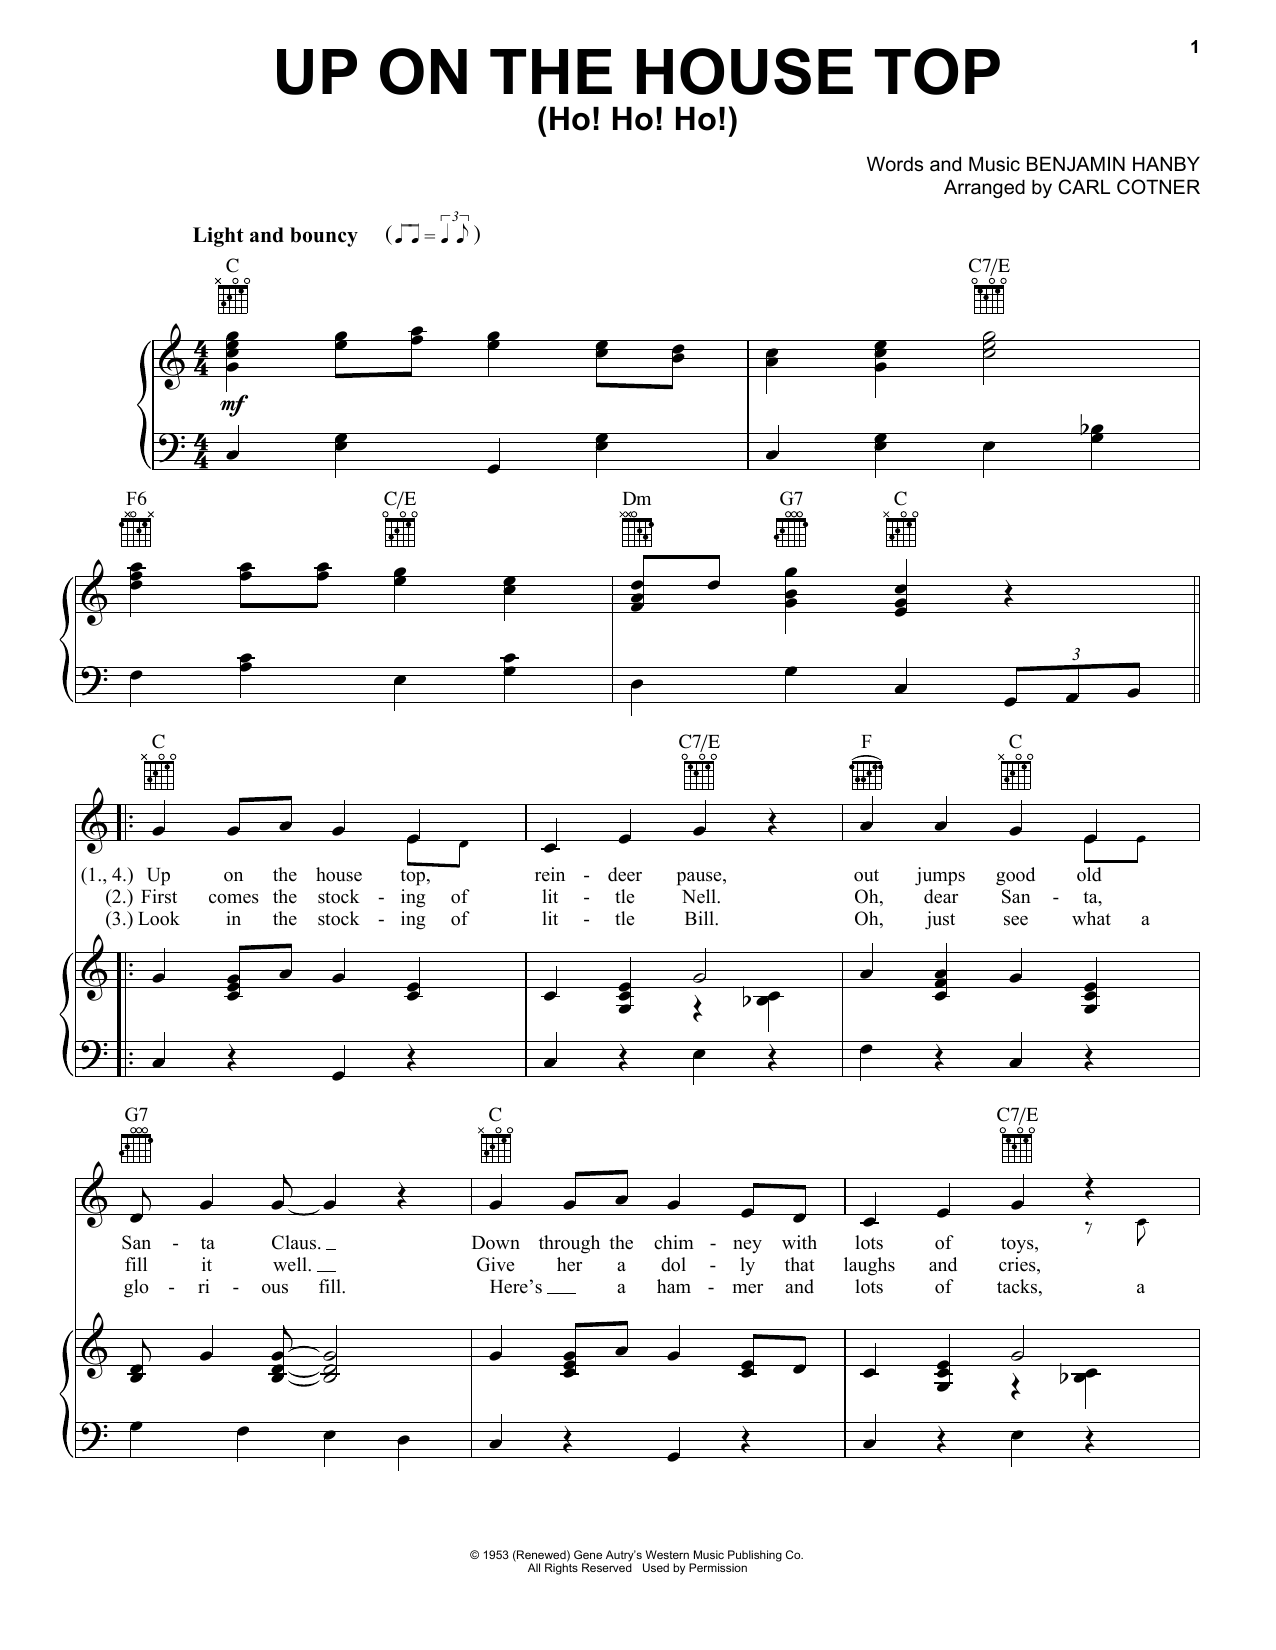 Gene Autry Up On The House Top (Ho! Ho! Ho!) sheet music notes and chords. Download Printable PDF.